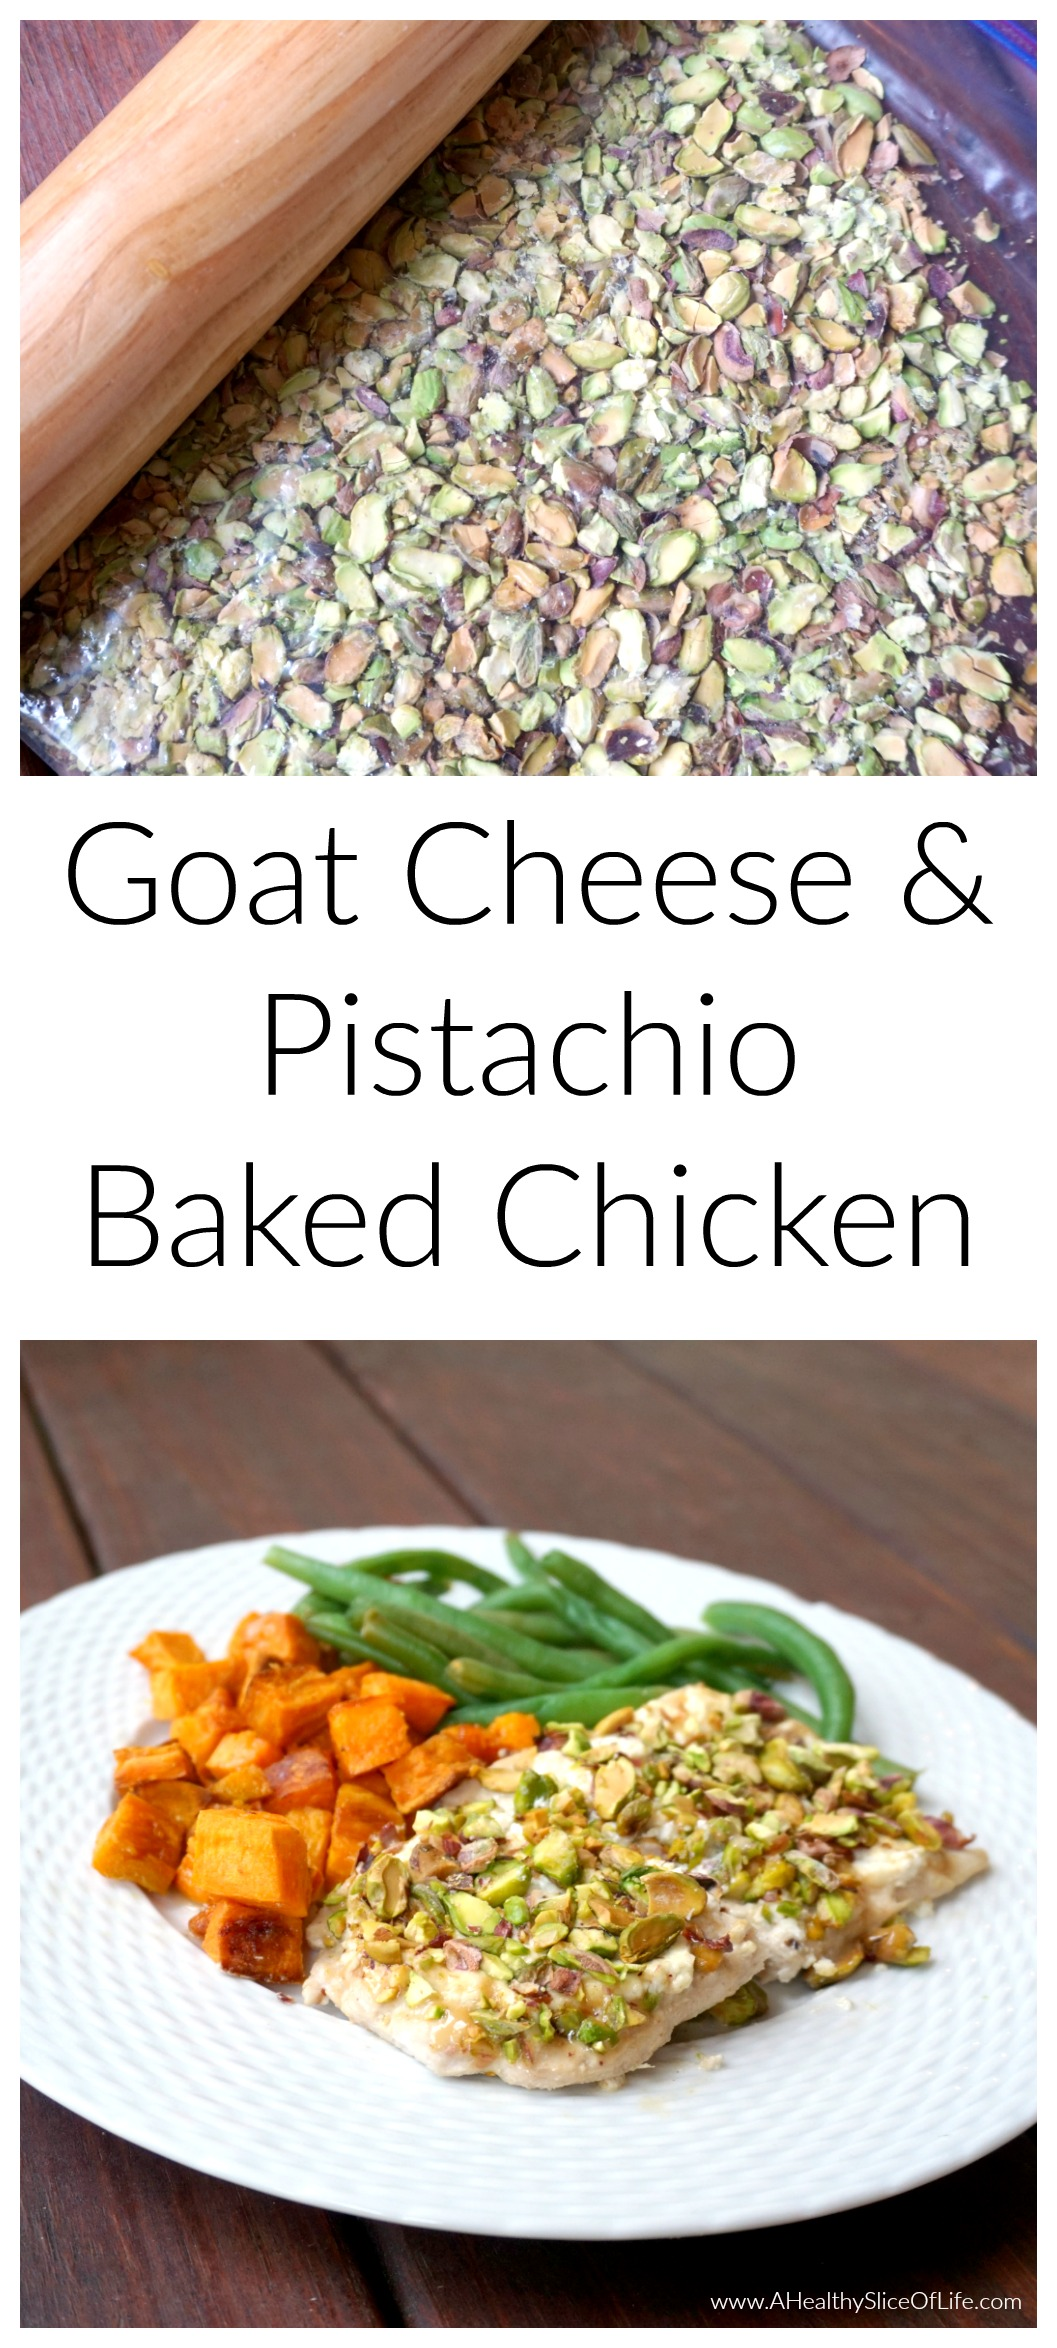 goat cheese and pistachio baked chicken